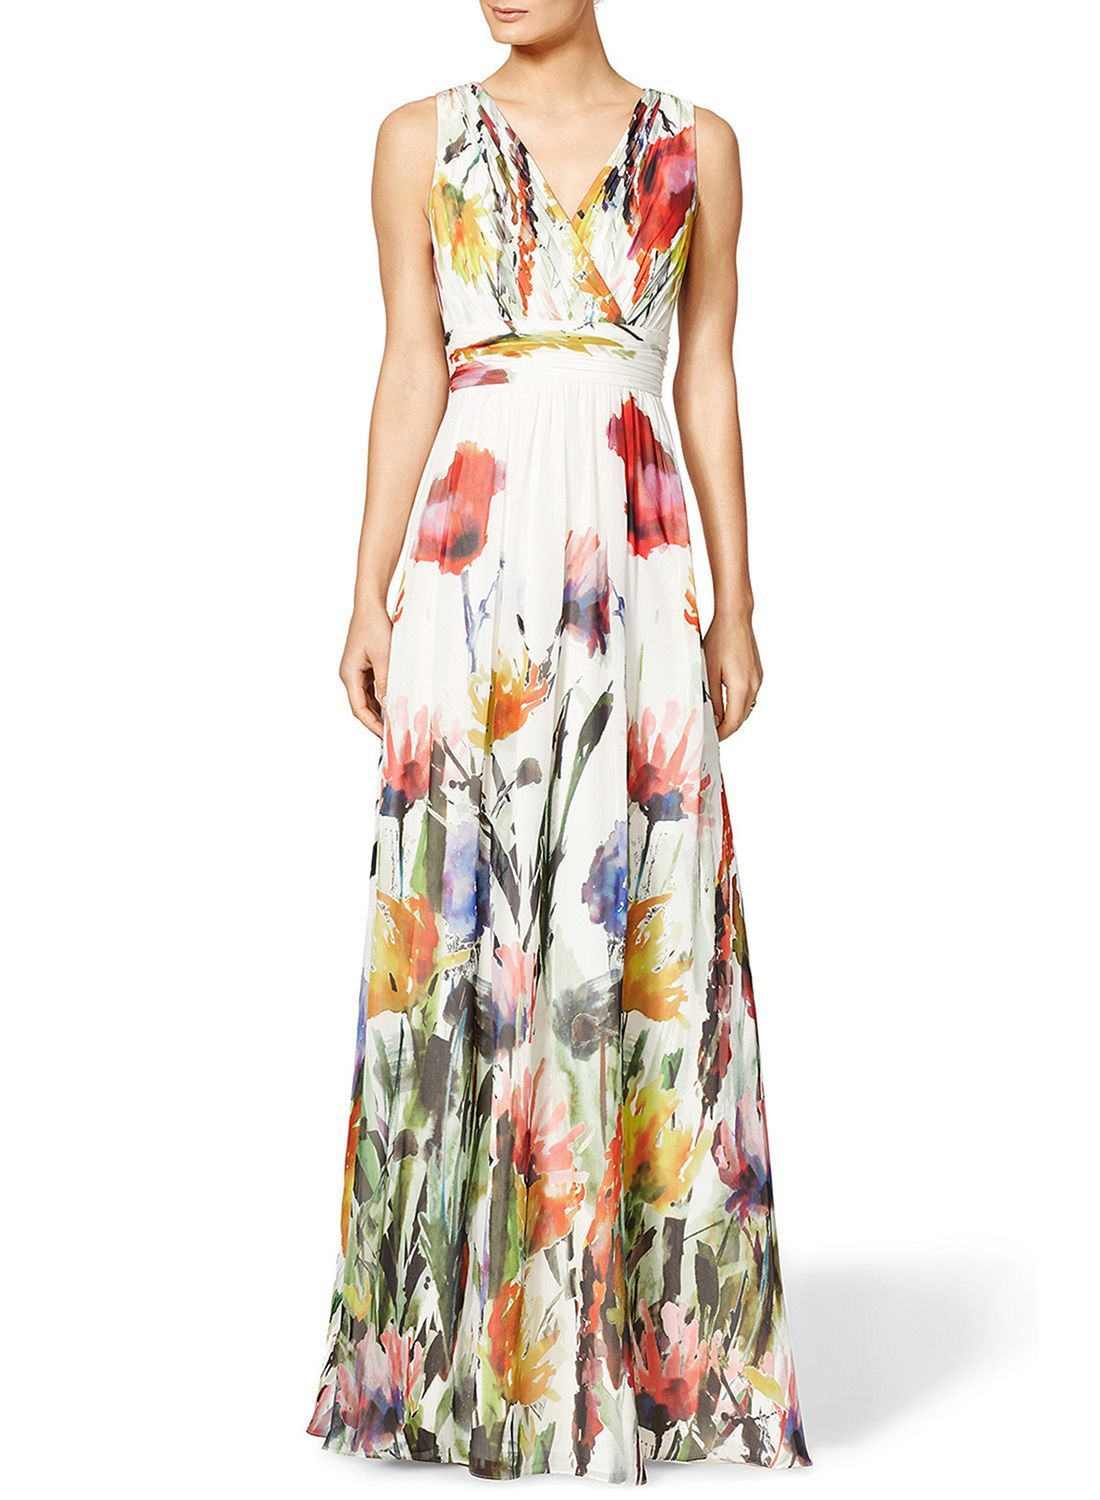 e862ce173af0e Flower dress with high hemisphere detail combined with trousers and a  shearling coat that makes the appearance look more stylish